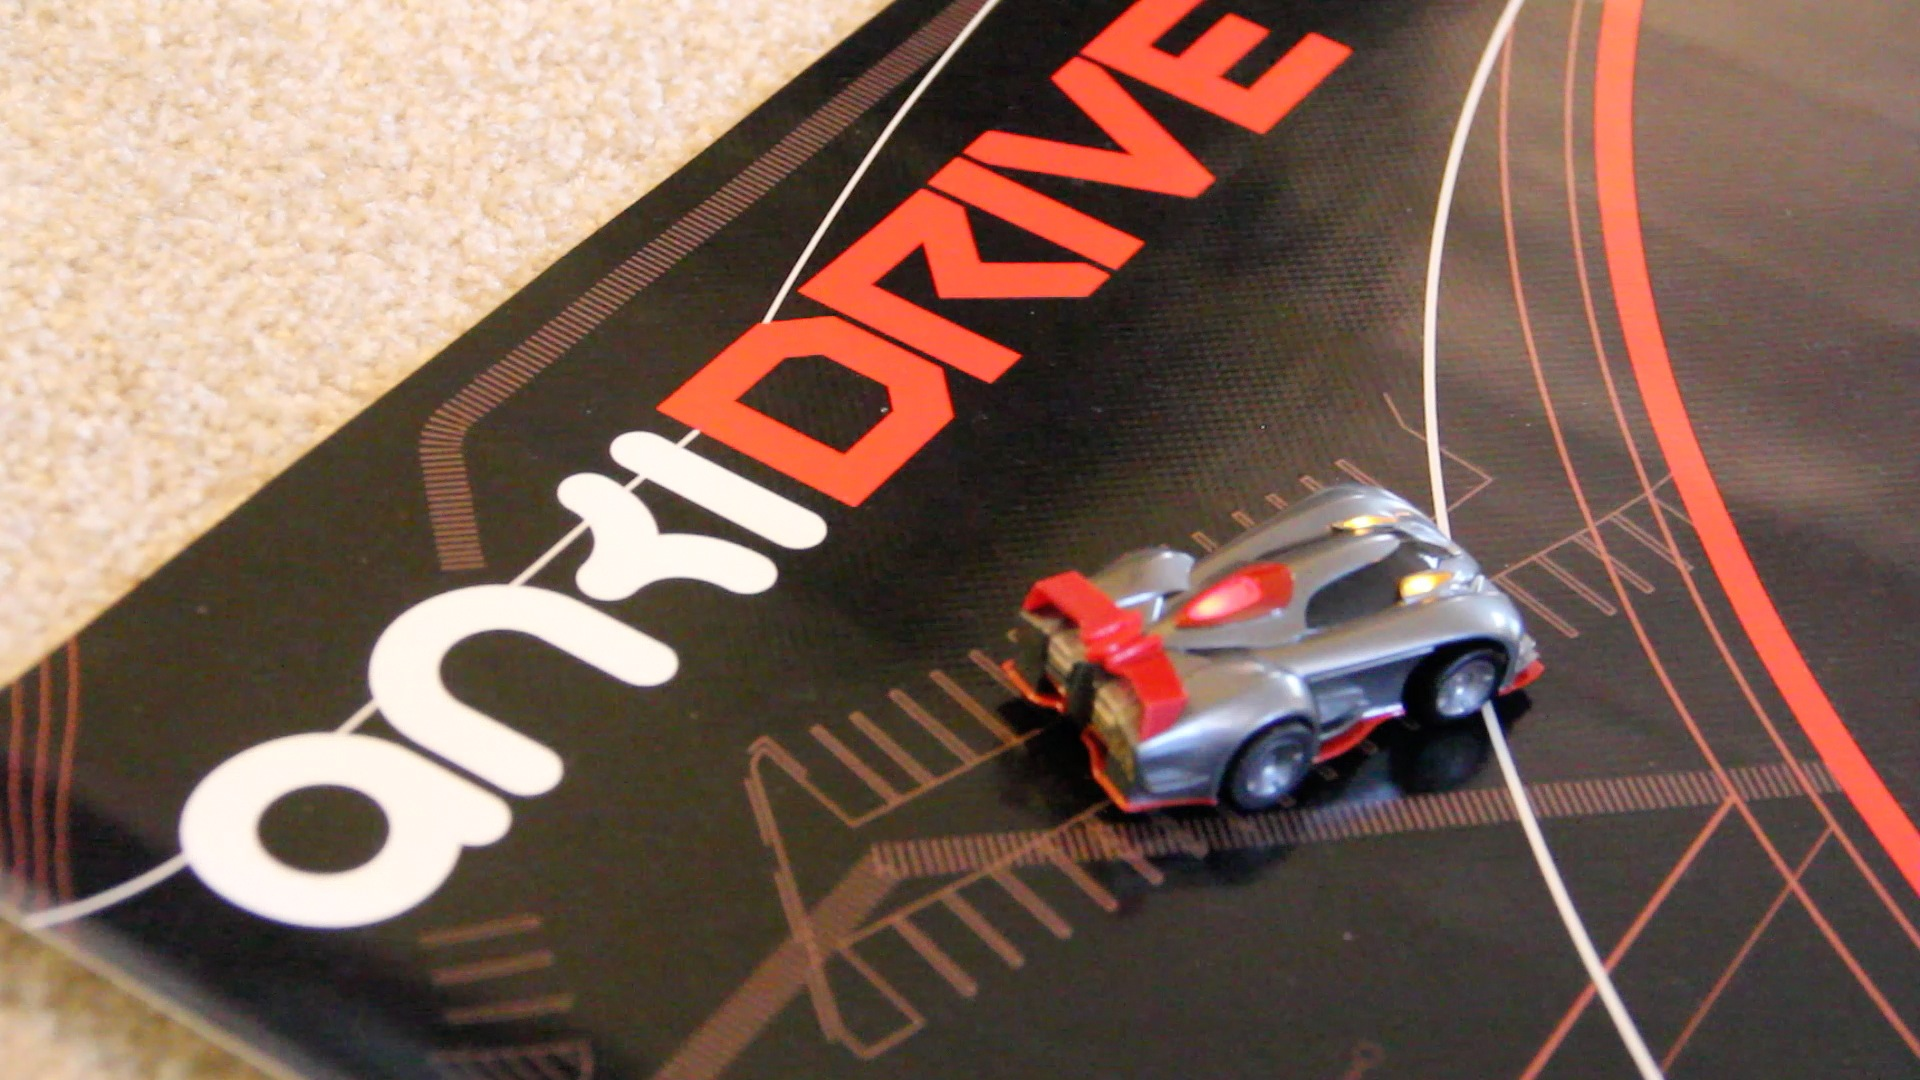 With Anki, Toy Cars Cruise Into the New Age of Robotics